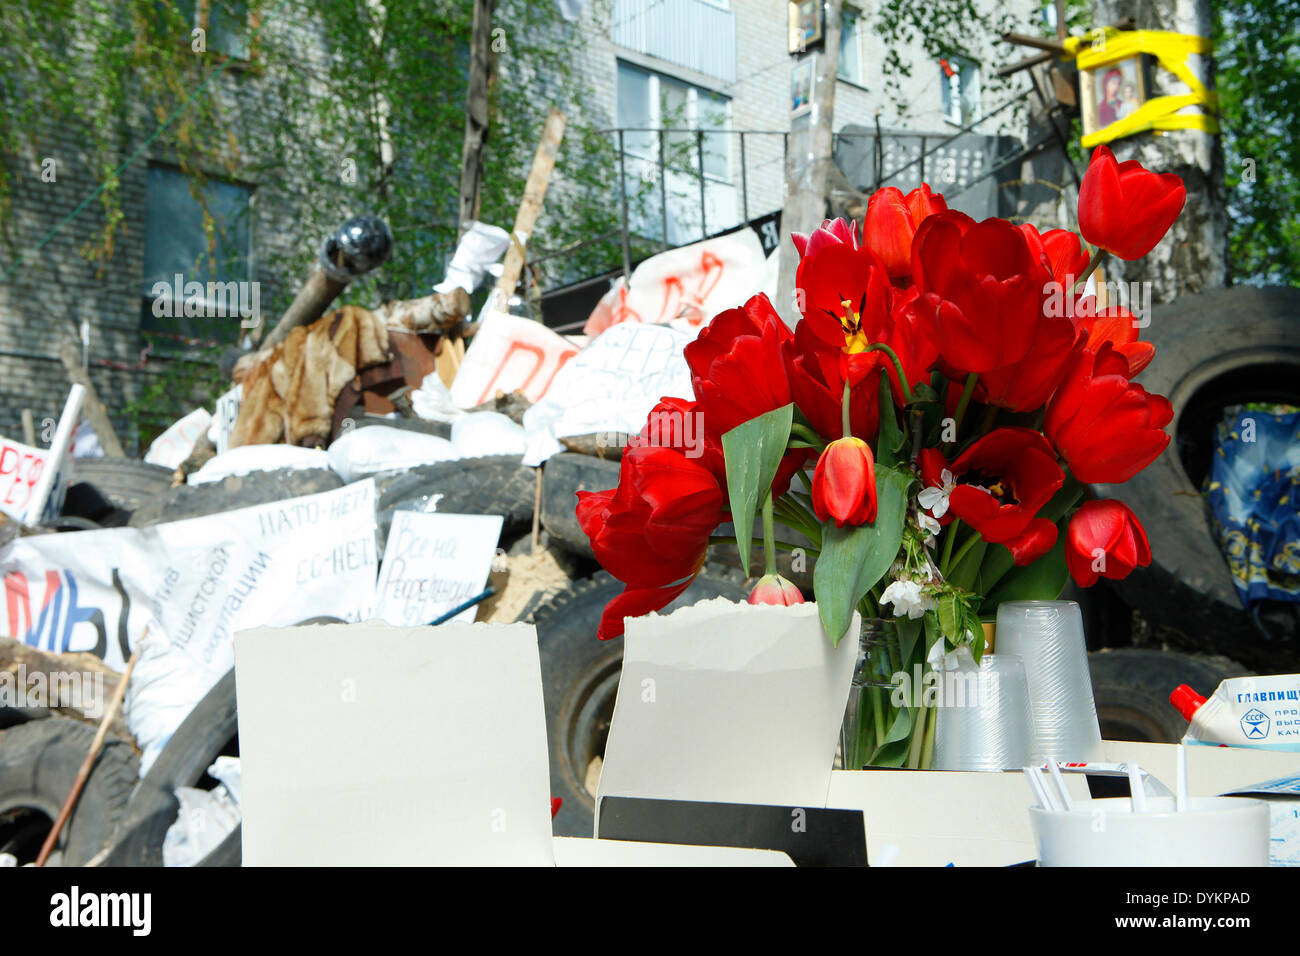 Sloviansk, Ukraine. 21st Apr, 2014. In photo: Tulipans and tipical Easter's cake near the barricades, feasting the Stock Photo